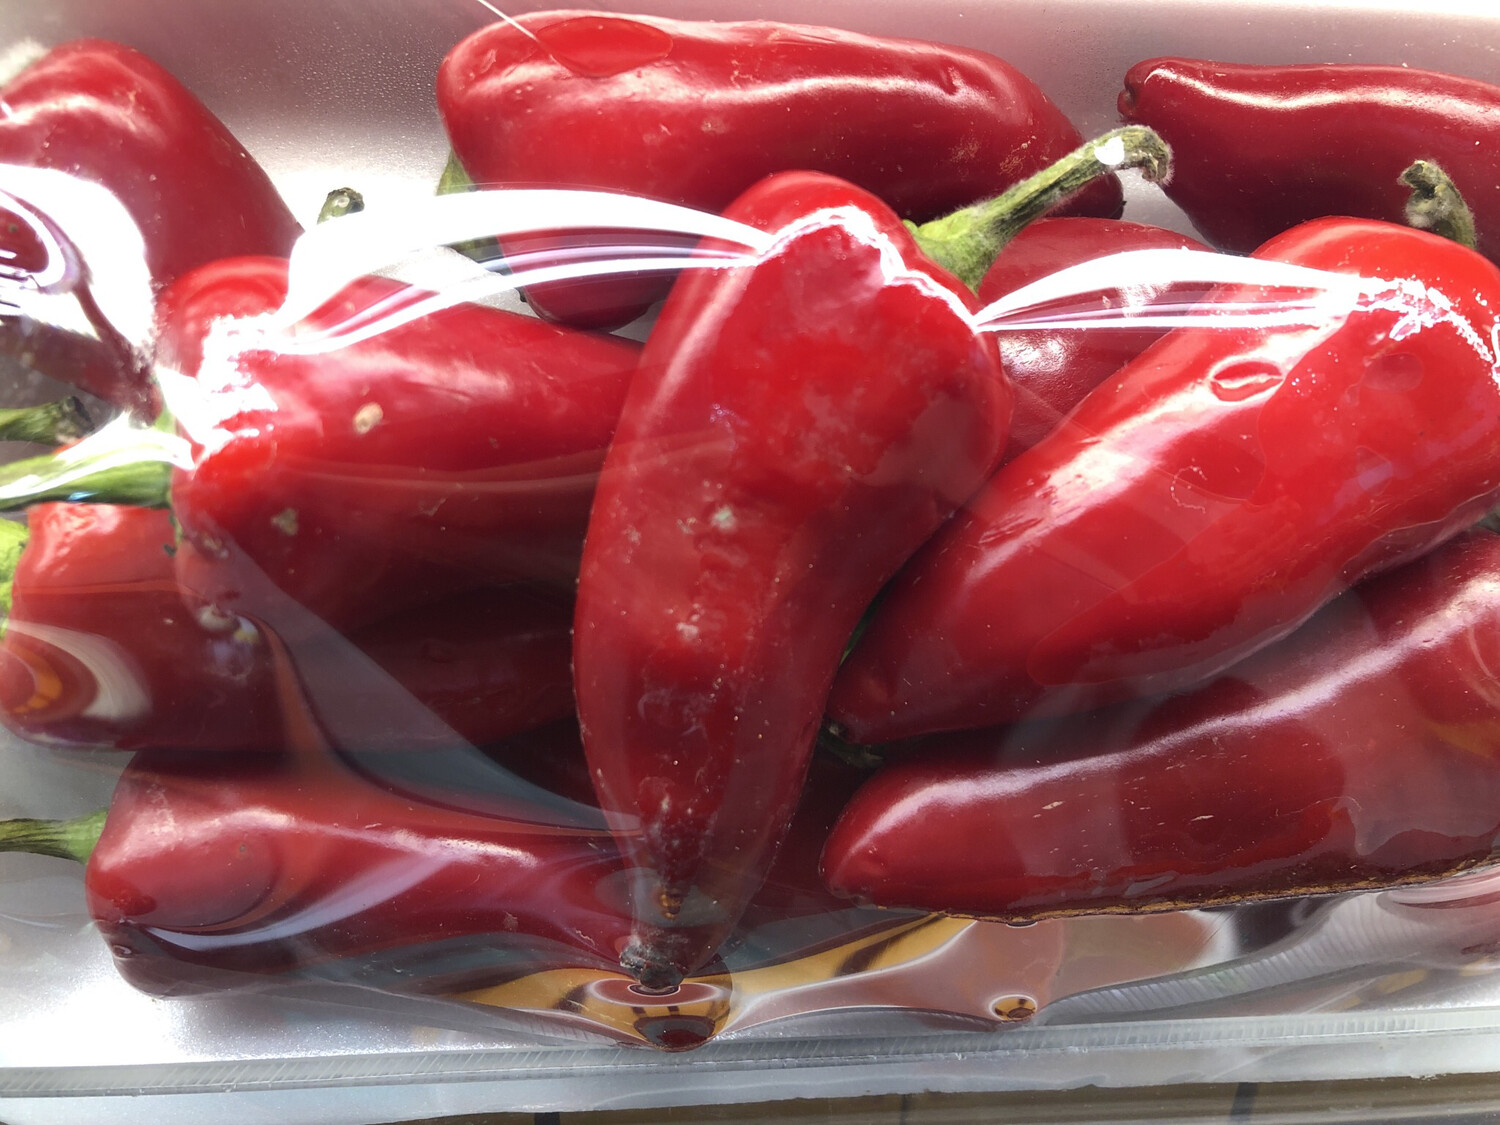 【RBP】Red Pepper 红辣椒 1lb